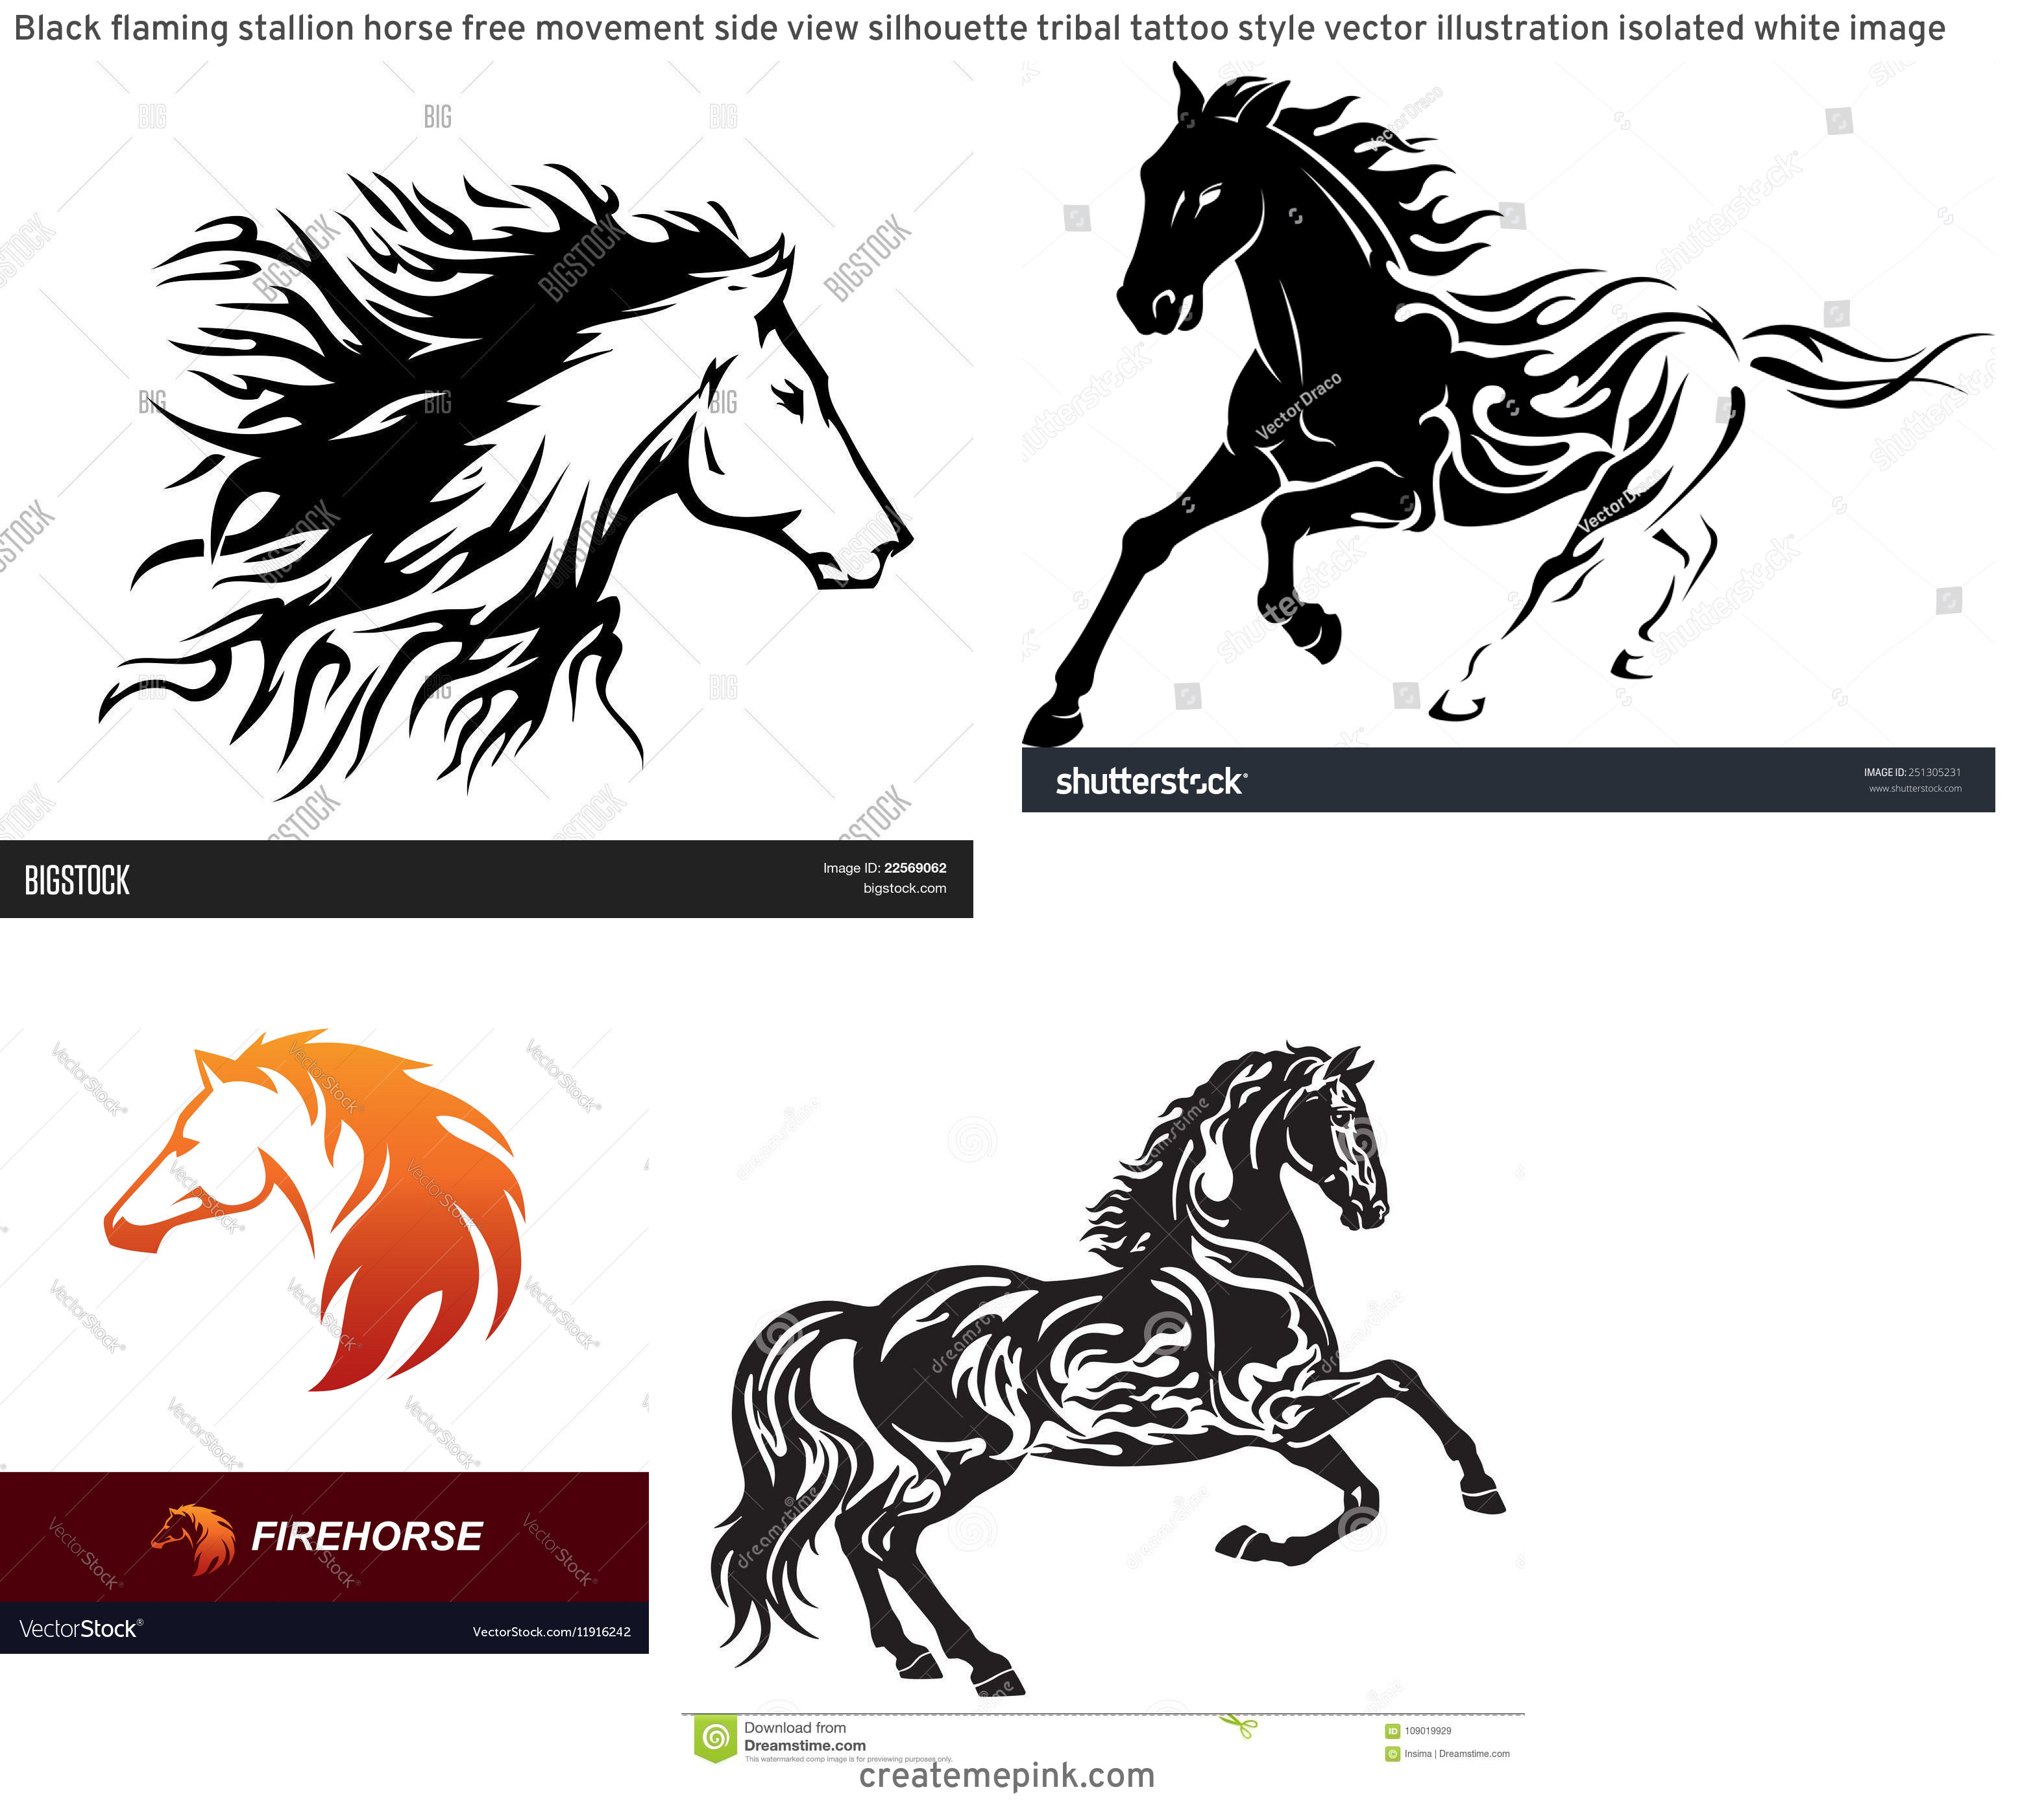 Horse With Flames Vector: Black Flaming Stallion Horse Free Movement Side View Silhouette Tribal Tattoo Style Vector Illustration Isolated White Image